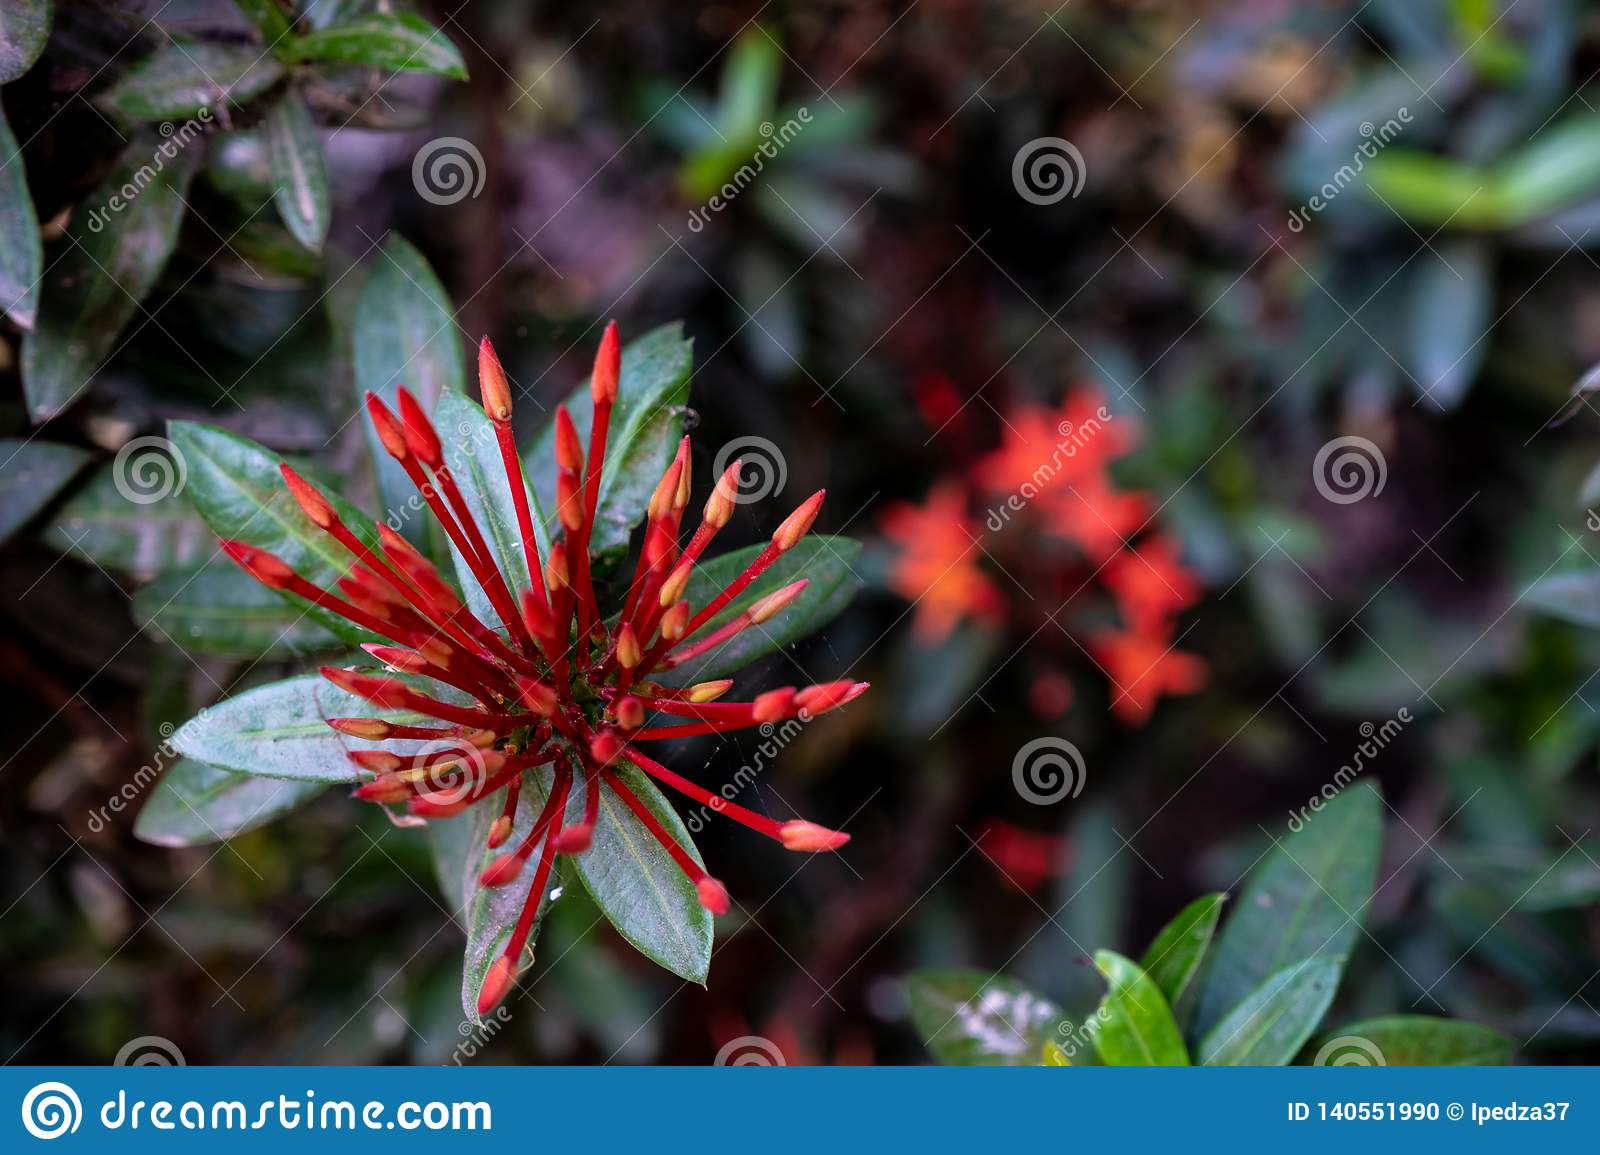 Red needle inflorescences in the garden